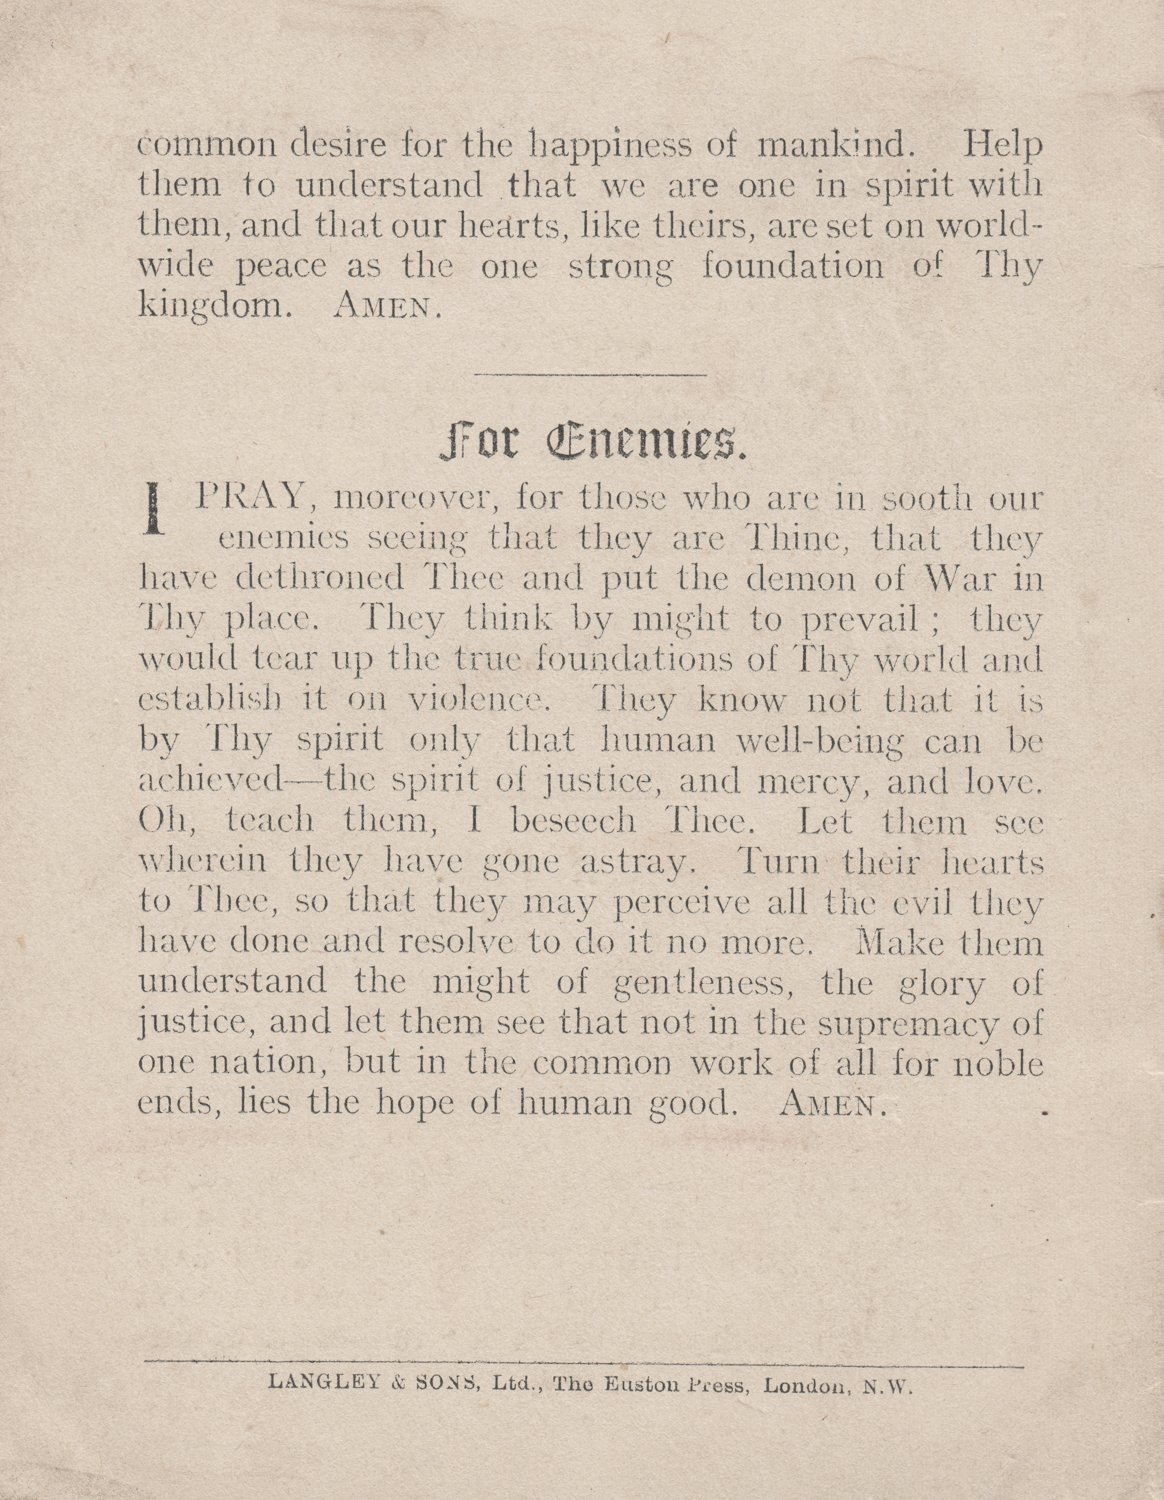 Prayers for private use by Jews in wartime. Prayer book, published in London in 1916.